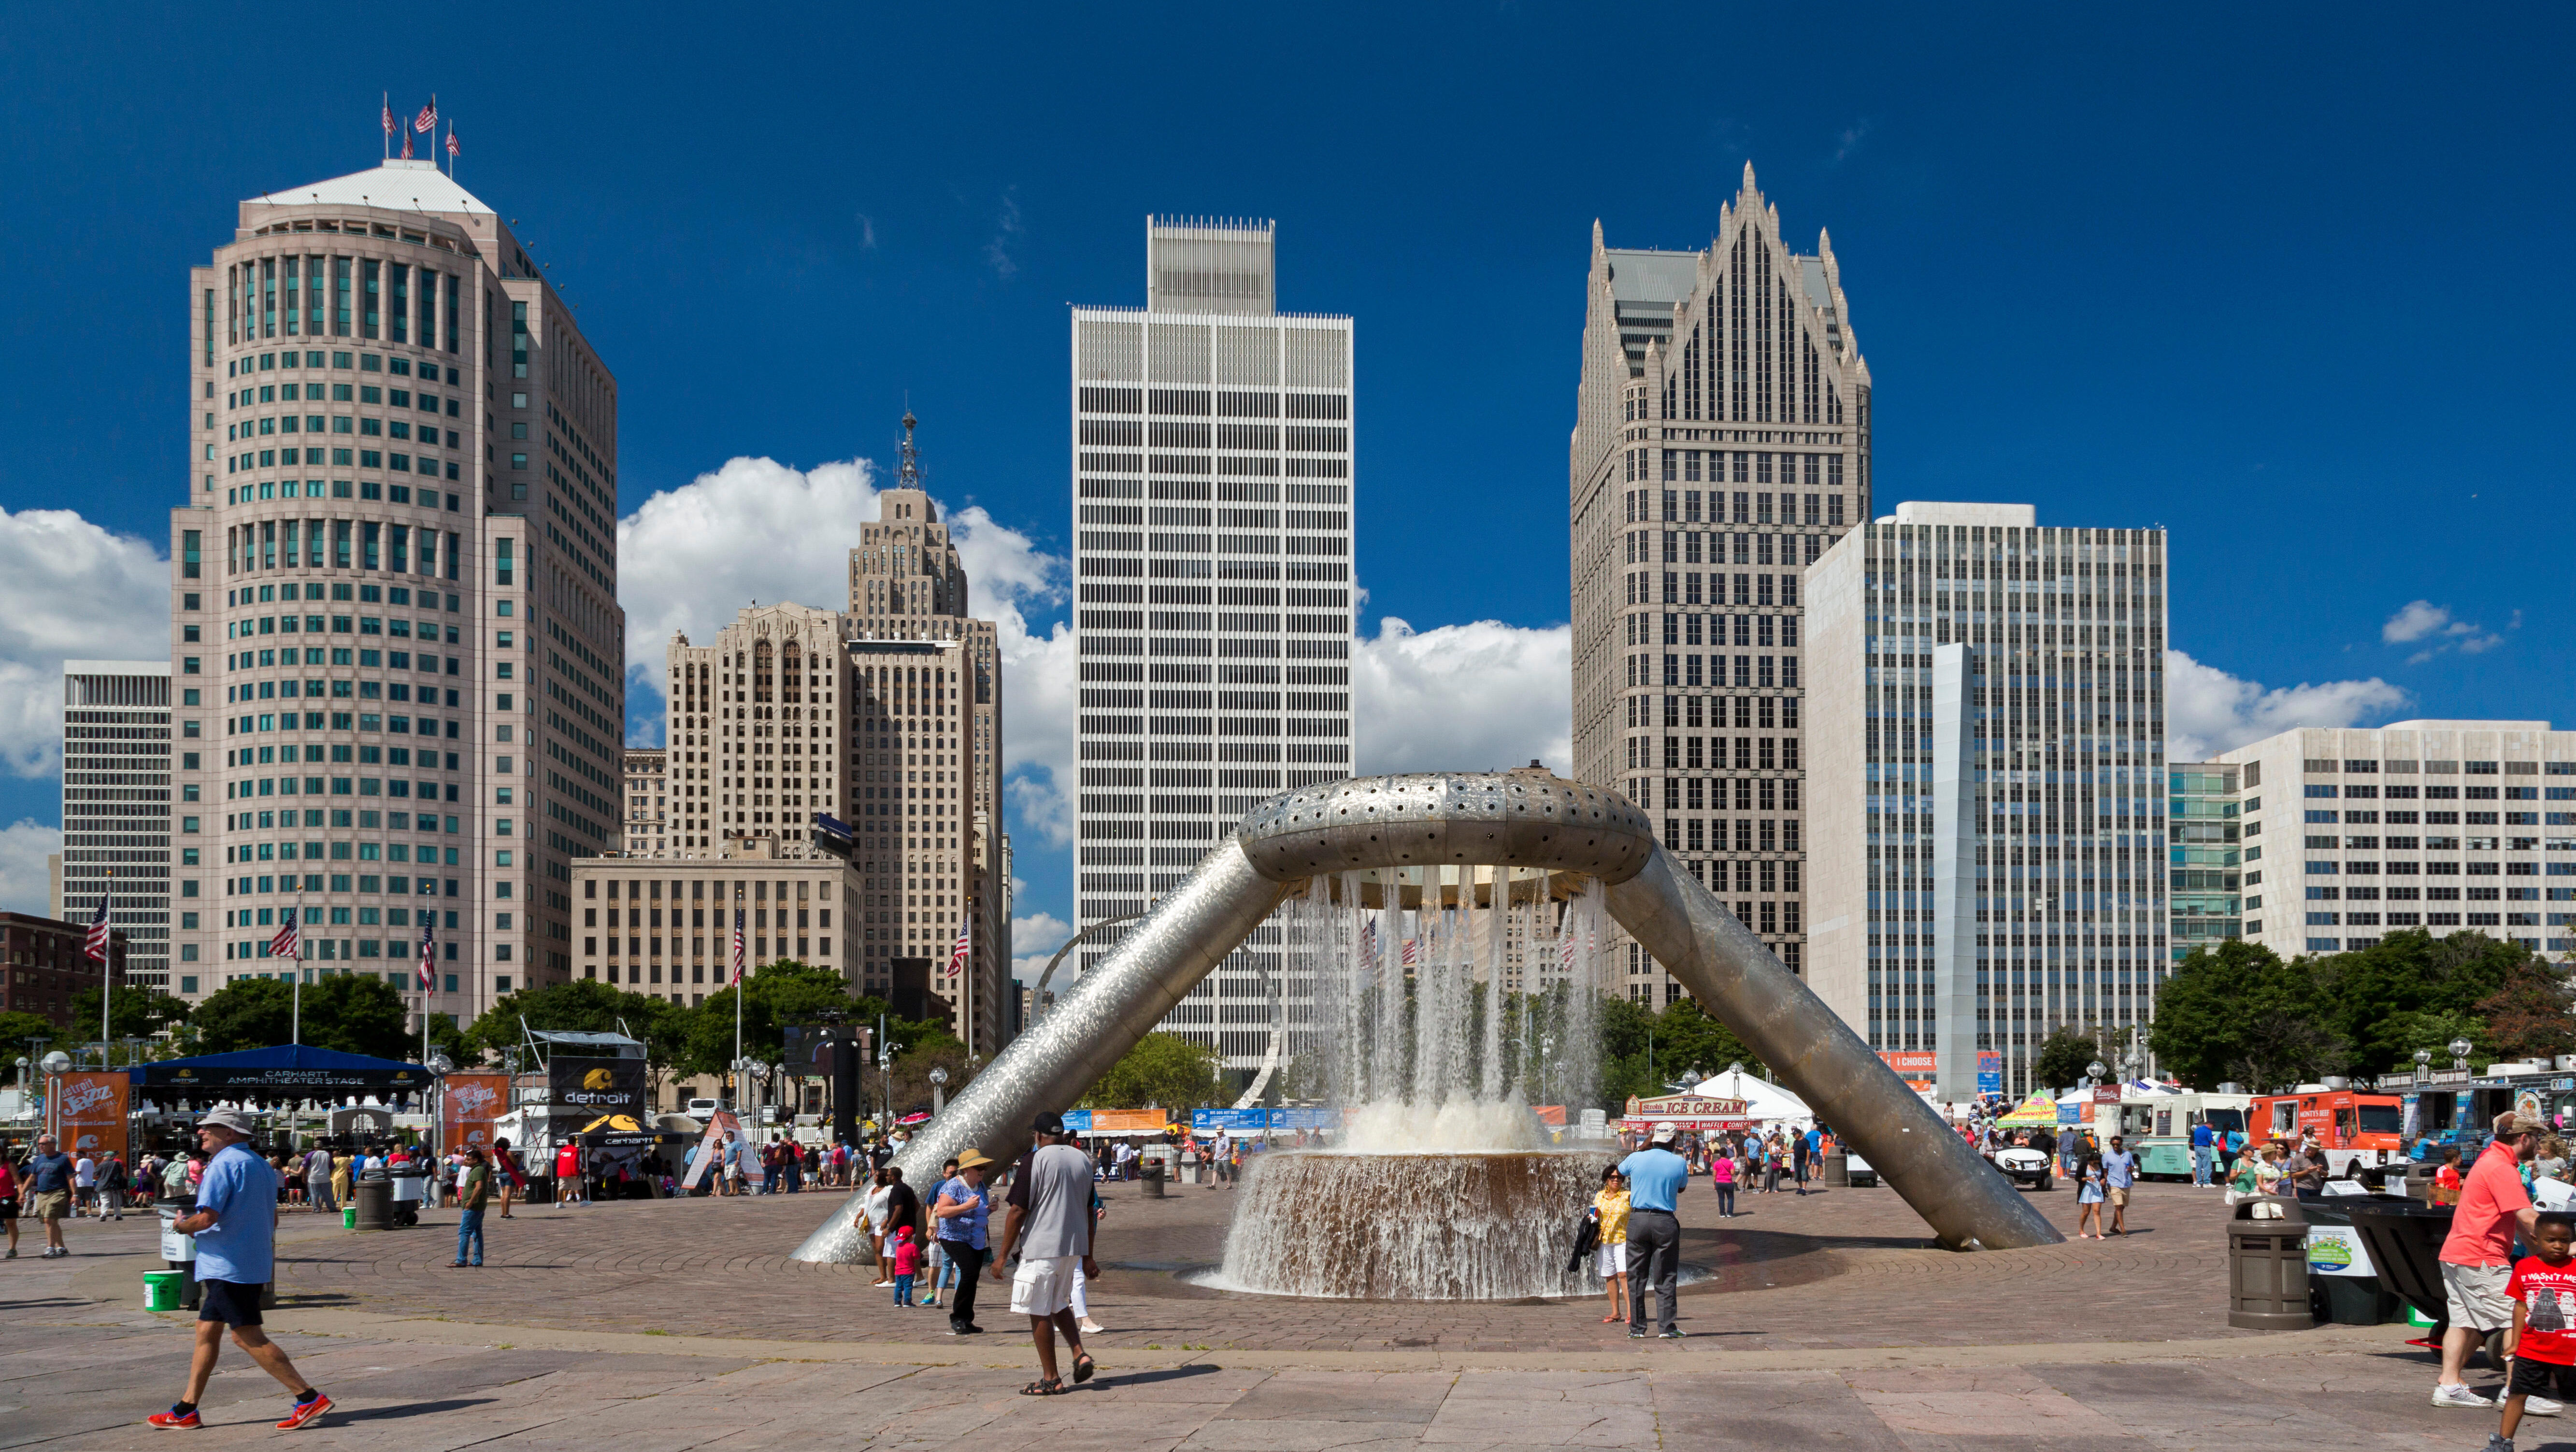 25 Must Visit Attractions In Detroit Michigan We also believe that there's maybe four to six other girls that have been reported missing that are buried. https theculturetrip com north america usa michigan articles 20 must visit attractions in detroit